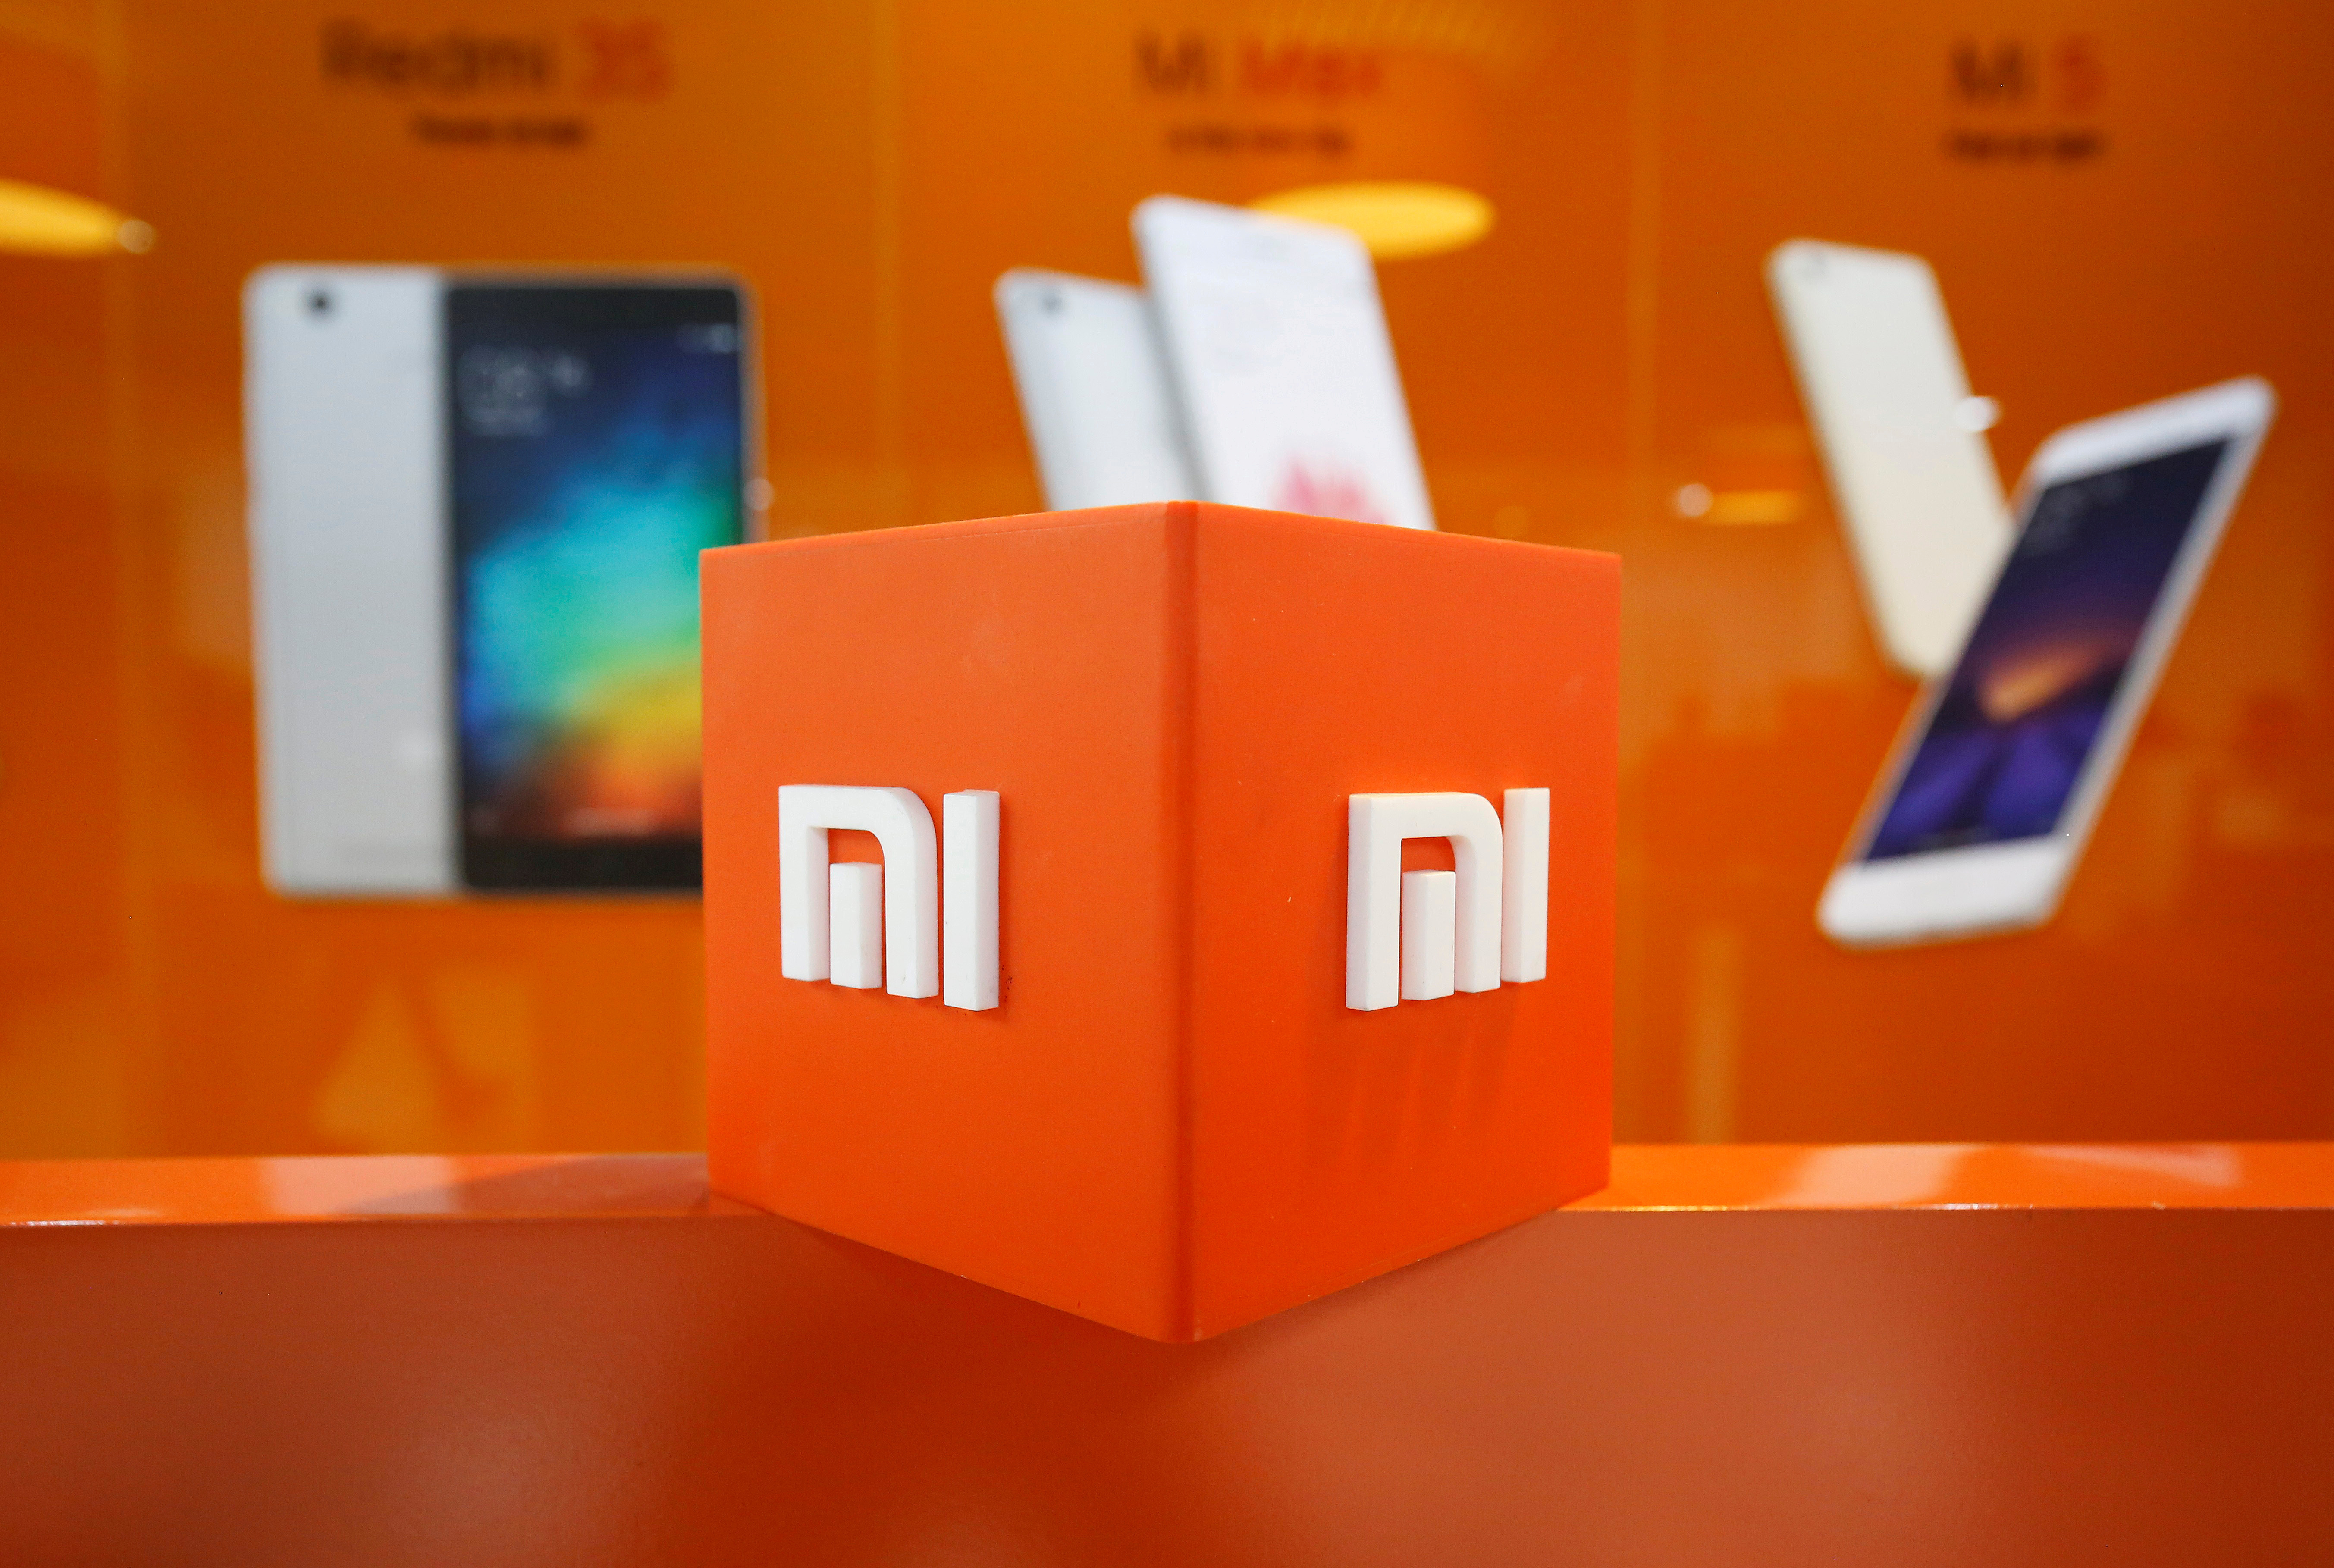 The logo of Xiaomi is seen inside the company's office in Bengaluru, India, January 18, 2018. REUTERS/Abhishek N. Chinnappa